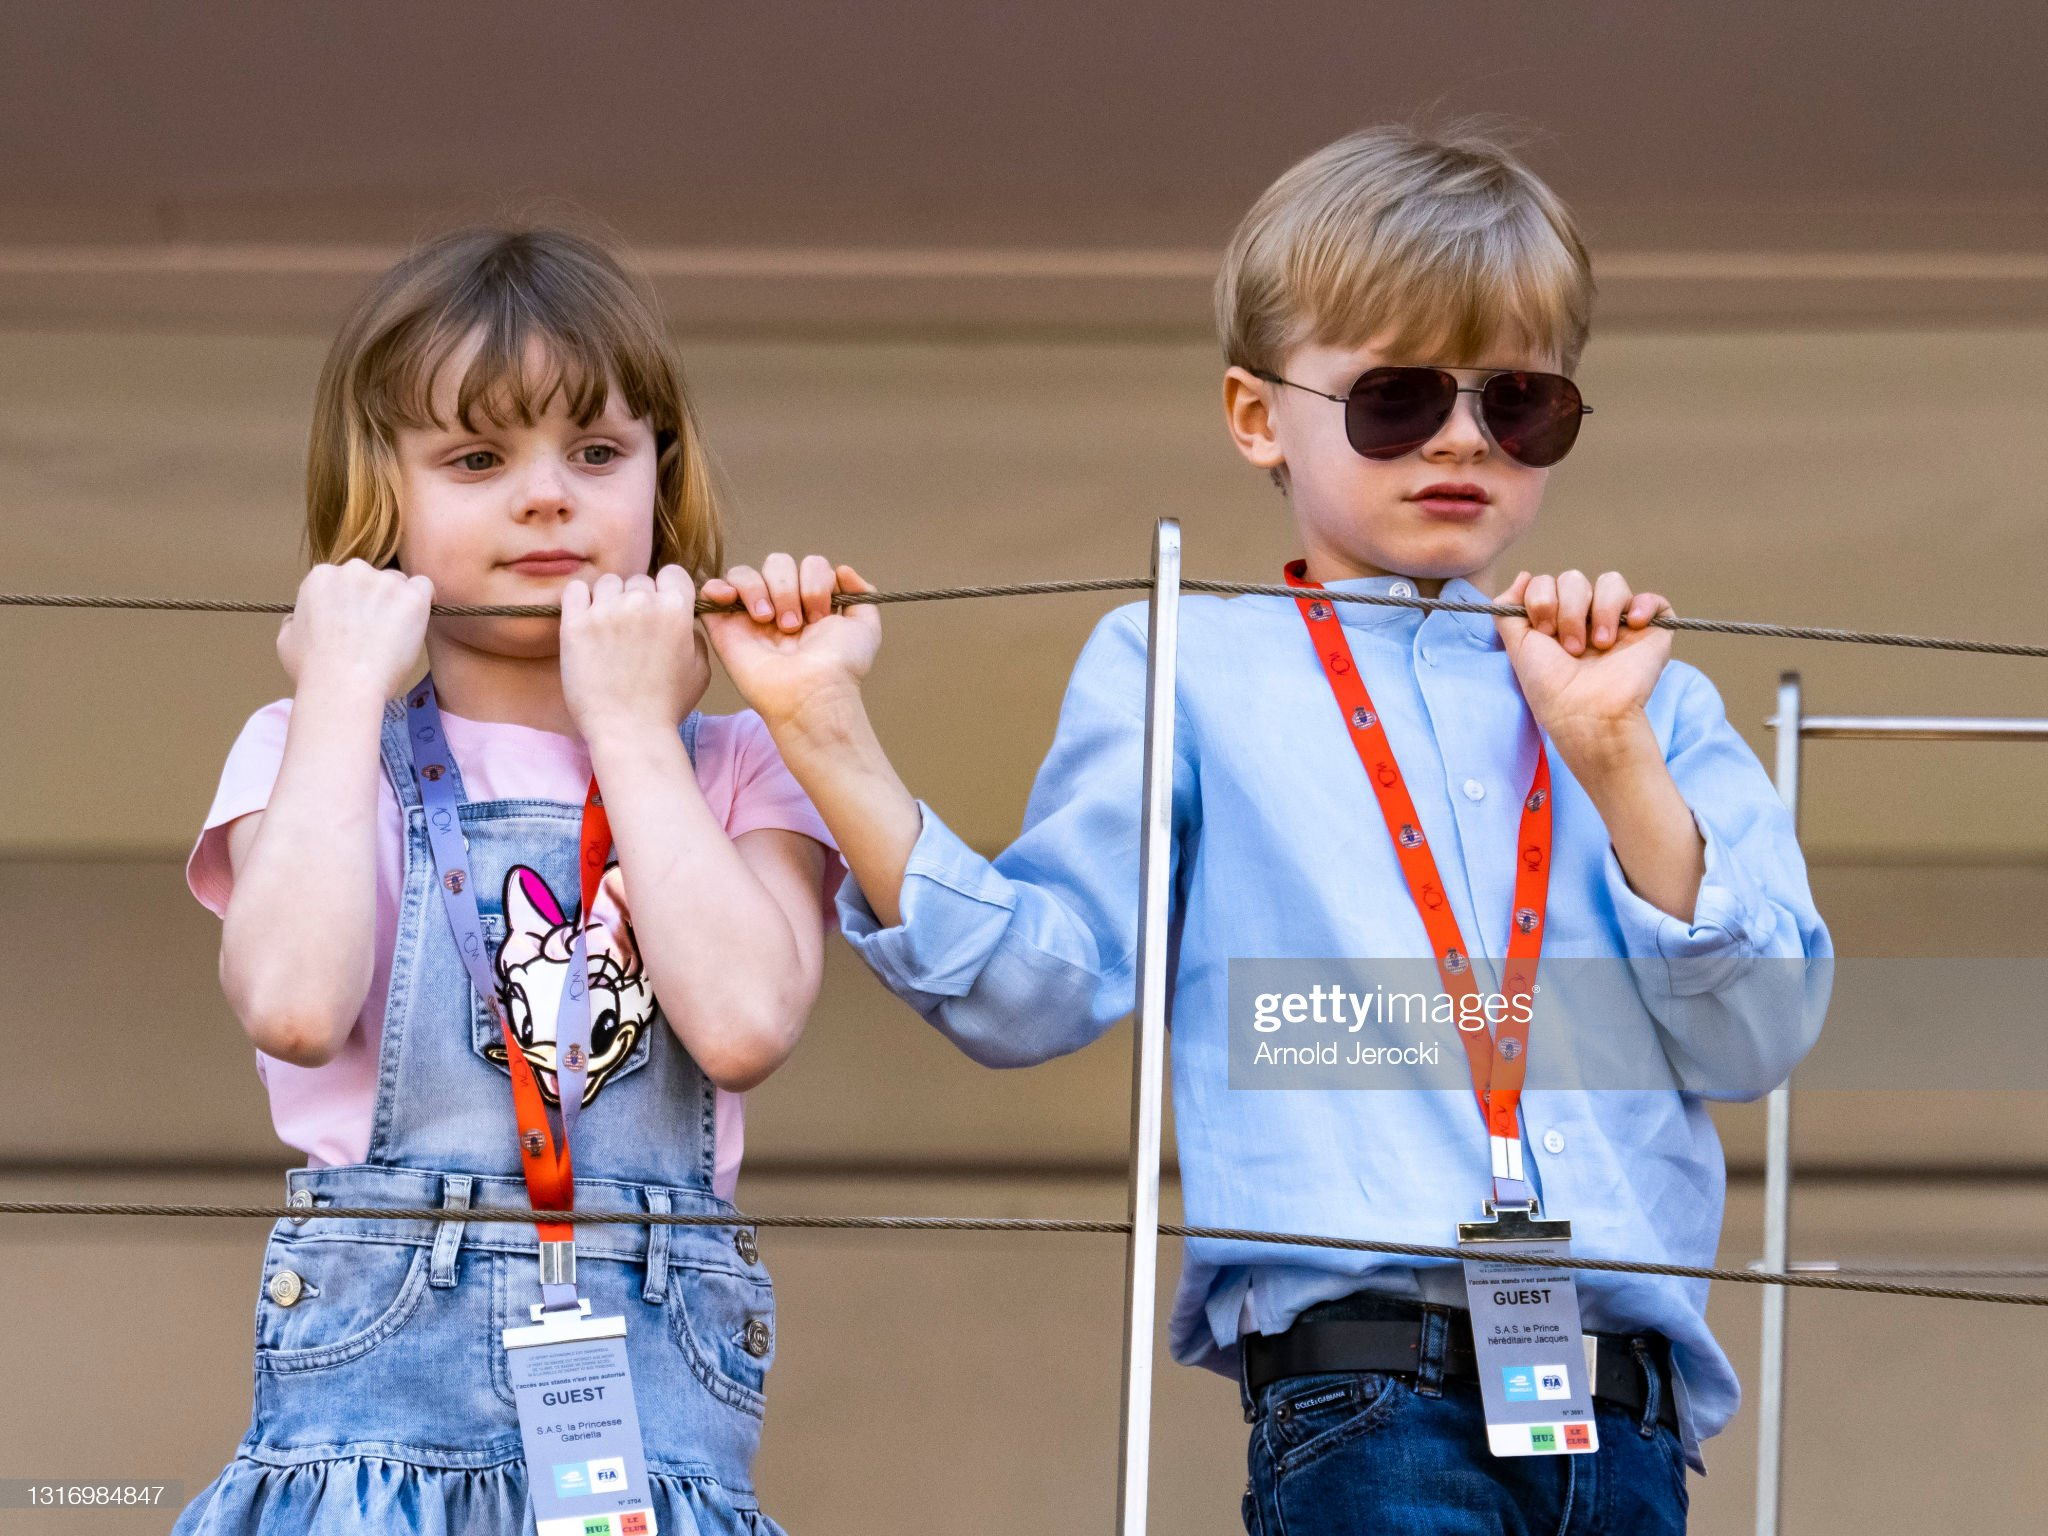 prince-jacques-and-hsh-princess-gabriela-attends-the-abb-fia-formula-picture-id1316984847